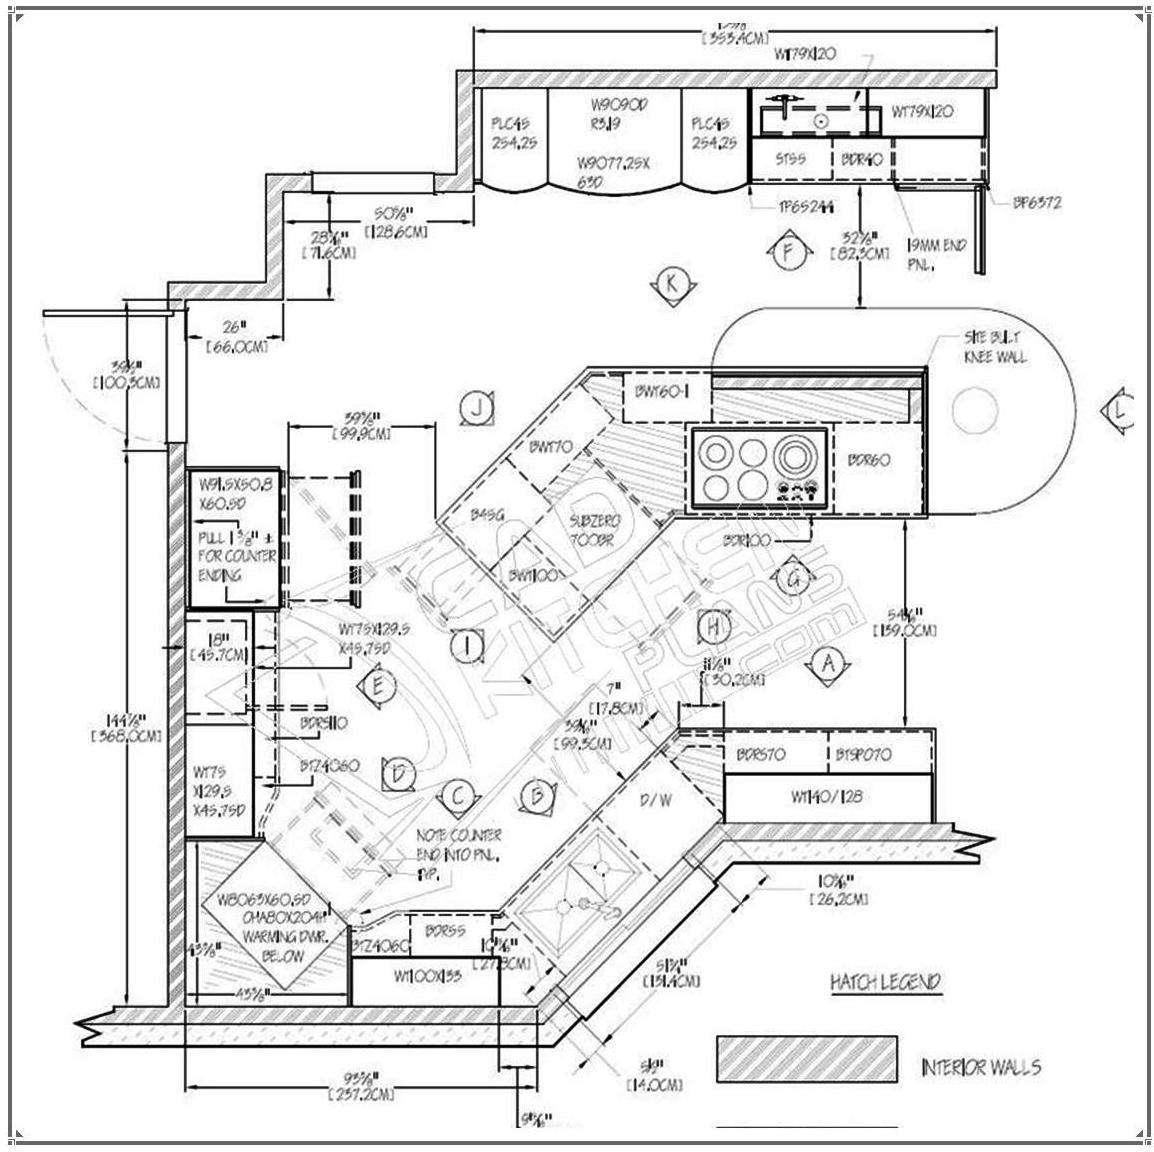 Pdf Drawing At Free For Personal Use Electrical Cad Drawings 1154x1152 Super Idea 6 House Plans In Autocad 2d Plan